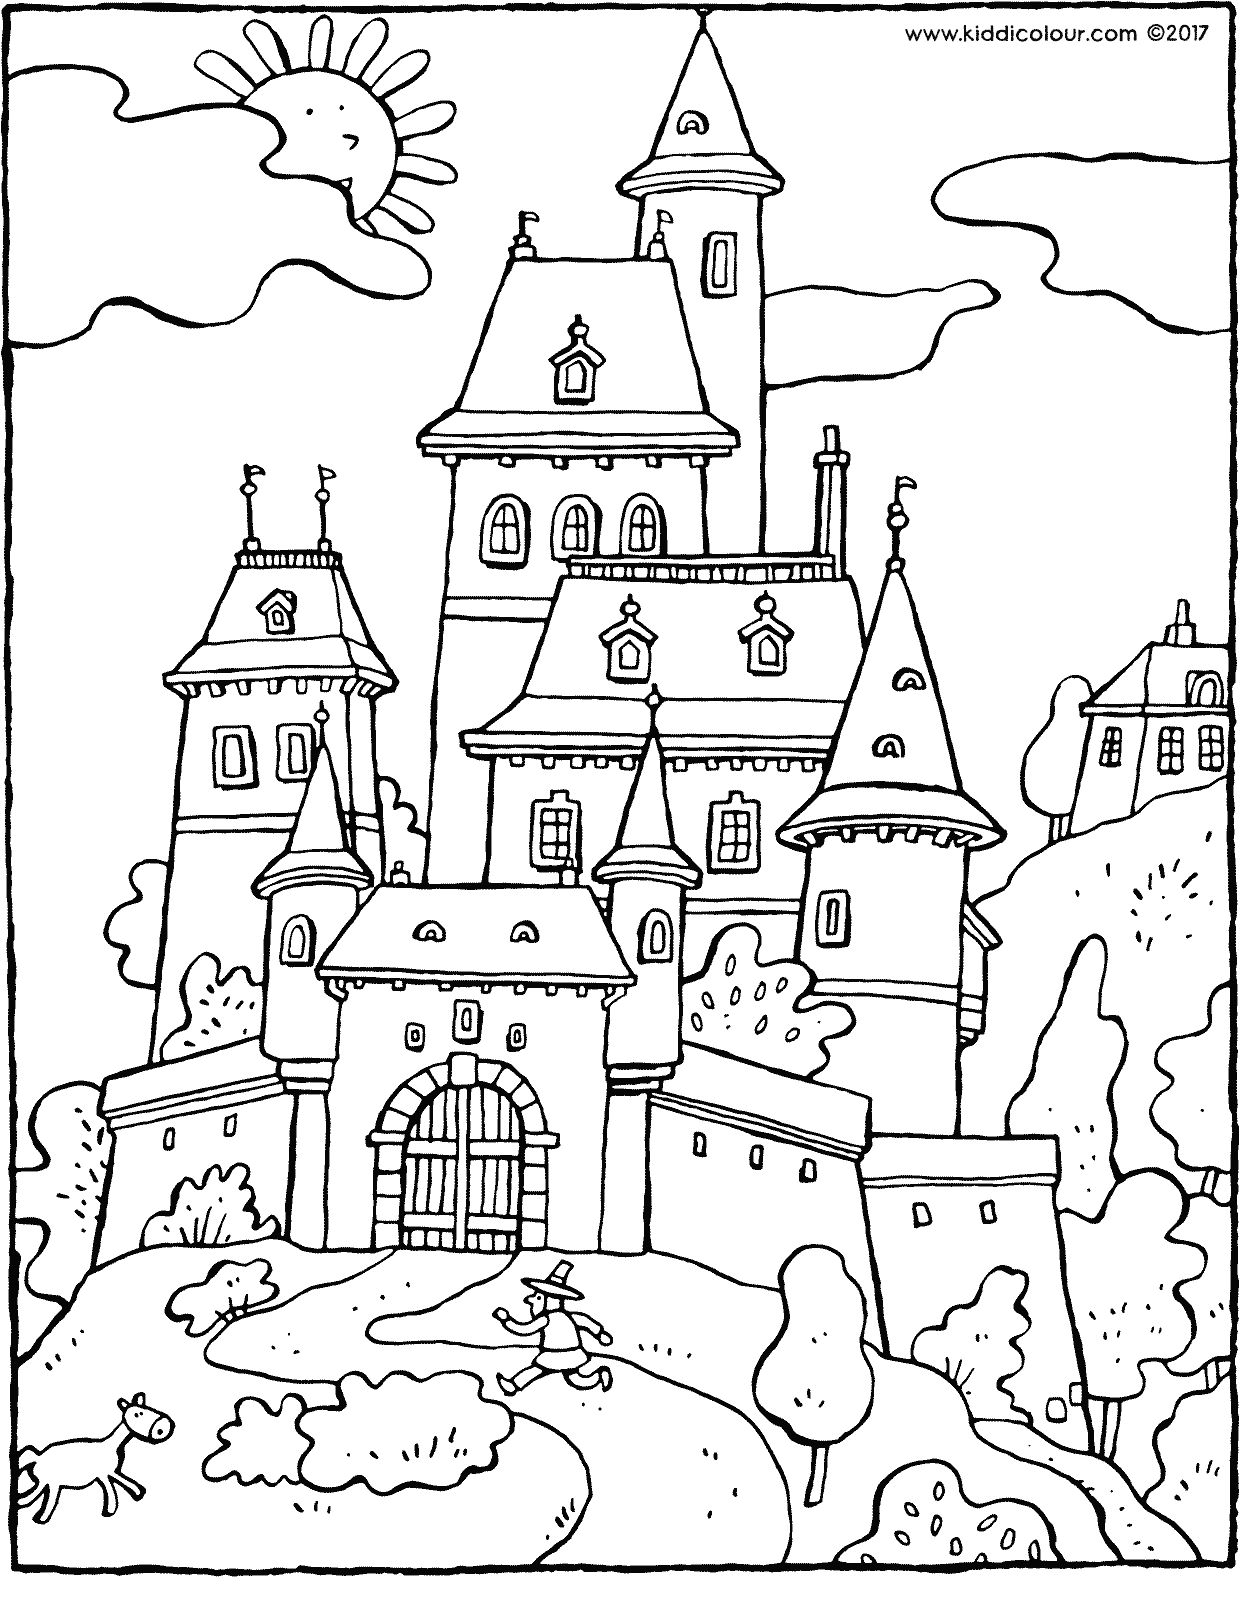 coloring pages of a castle dragon and castle coloring pages at getcoloringscom a of castle coloring pages